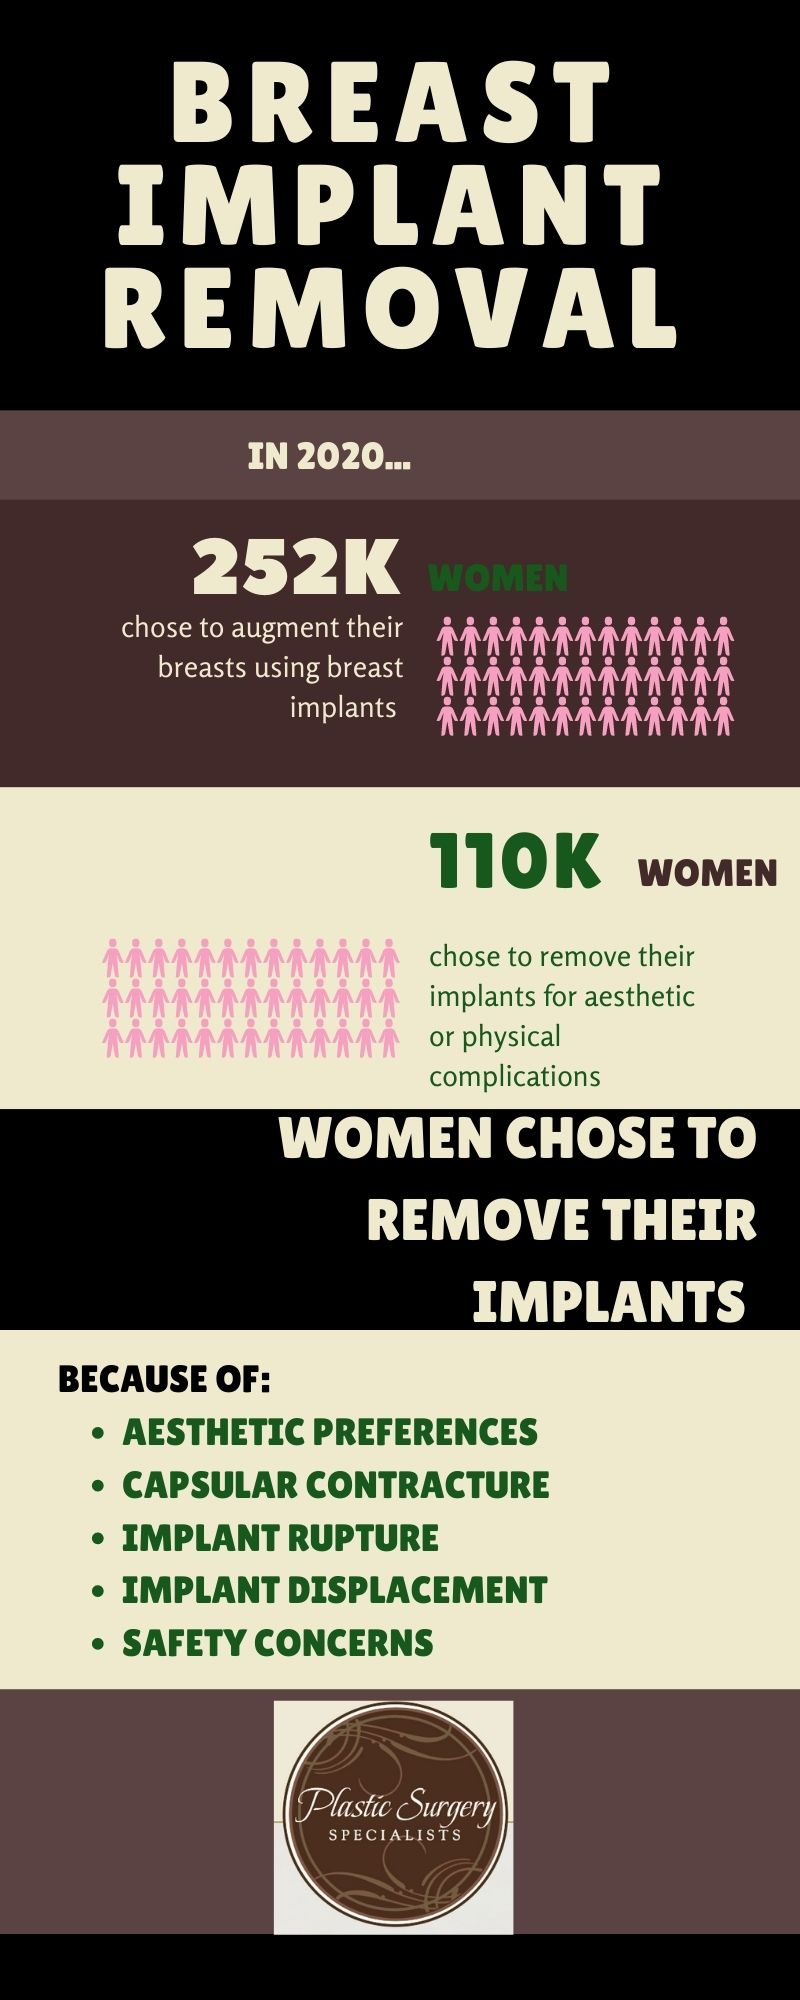 Infographic showing breast implant removal statistics.